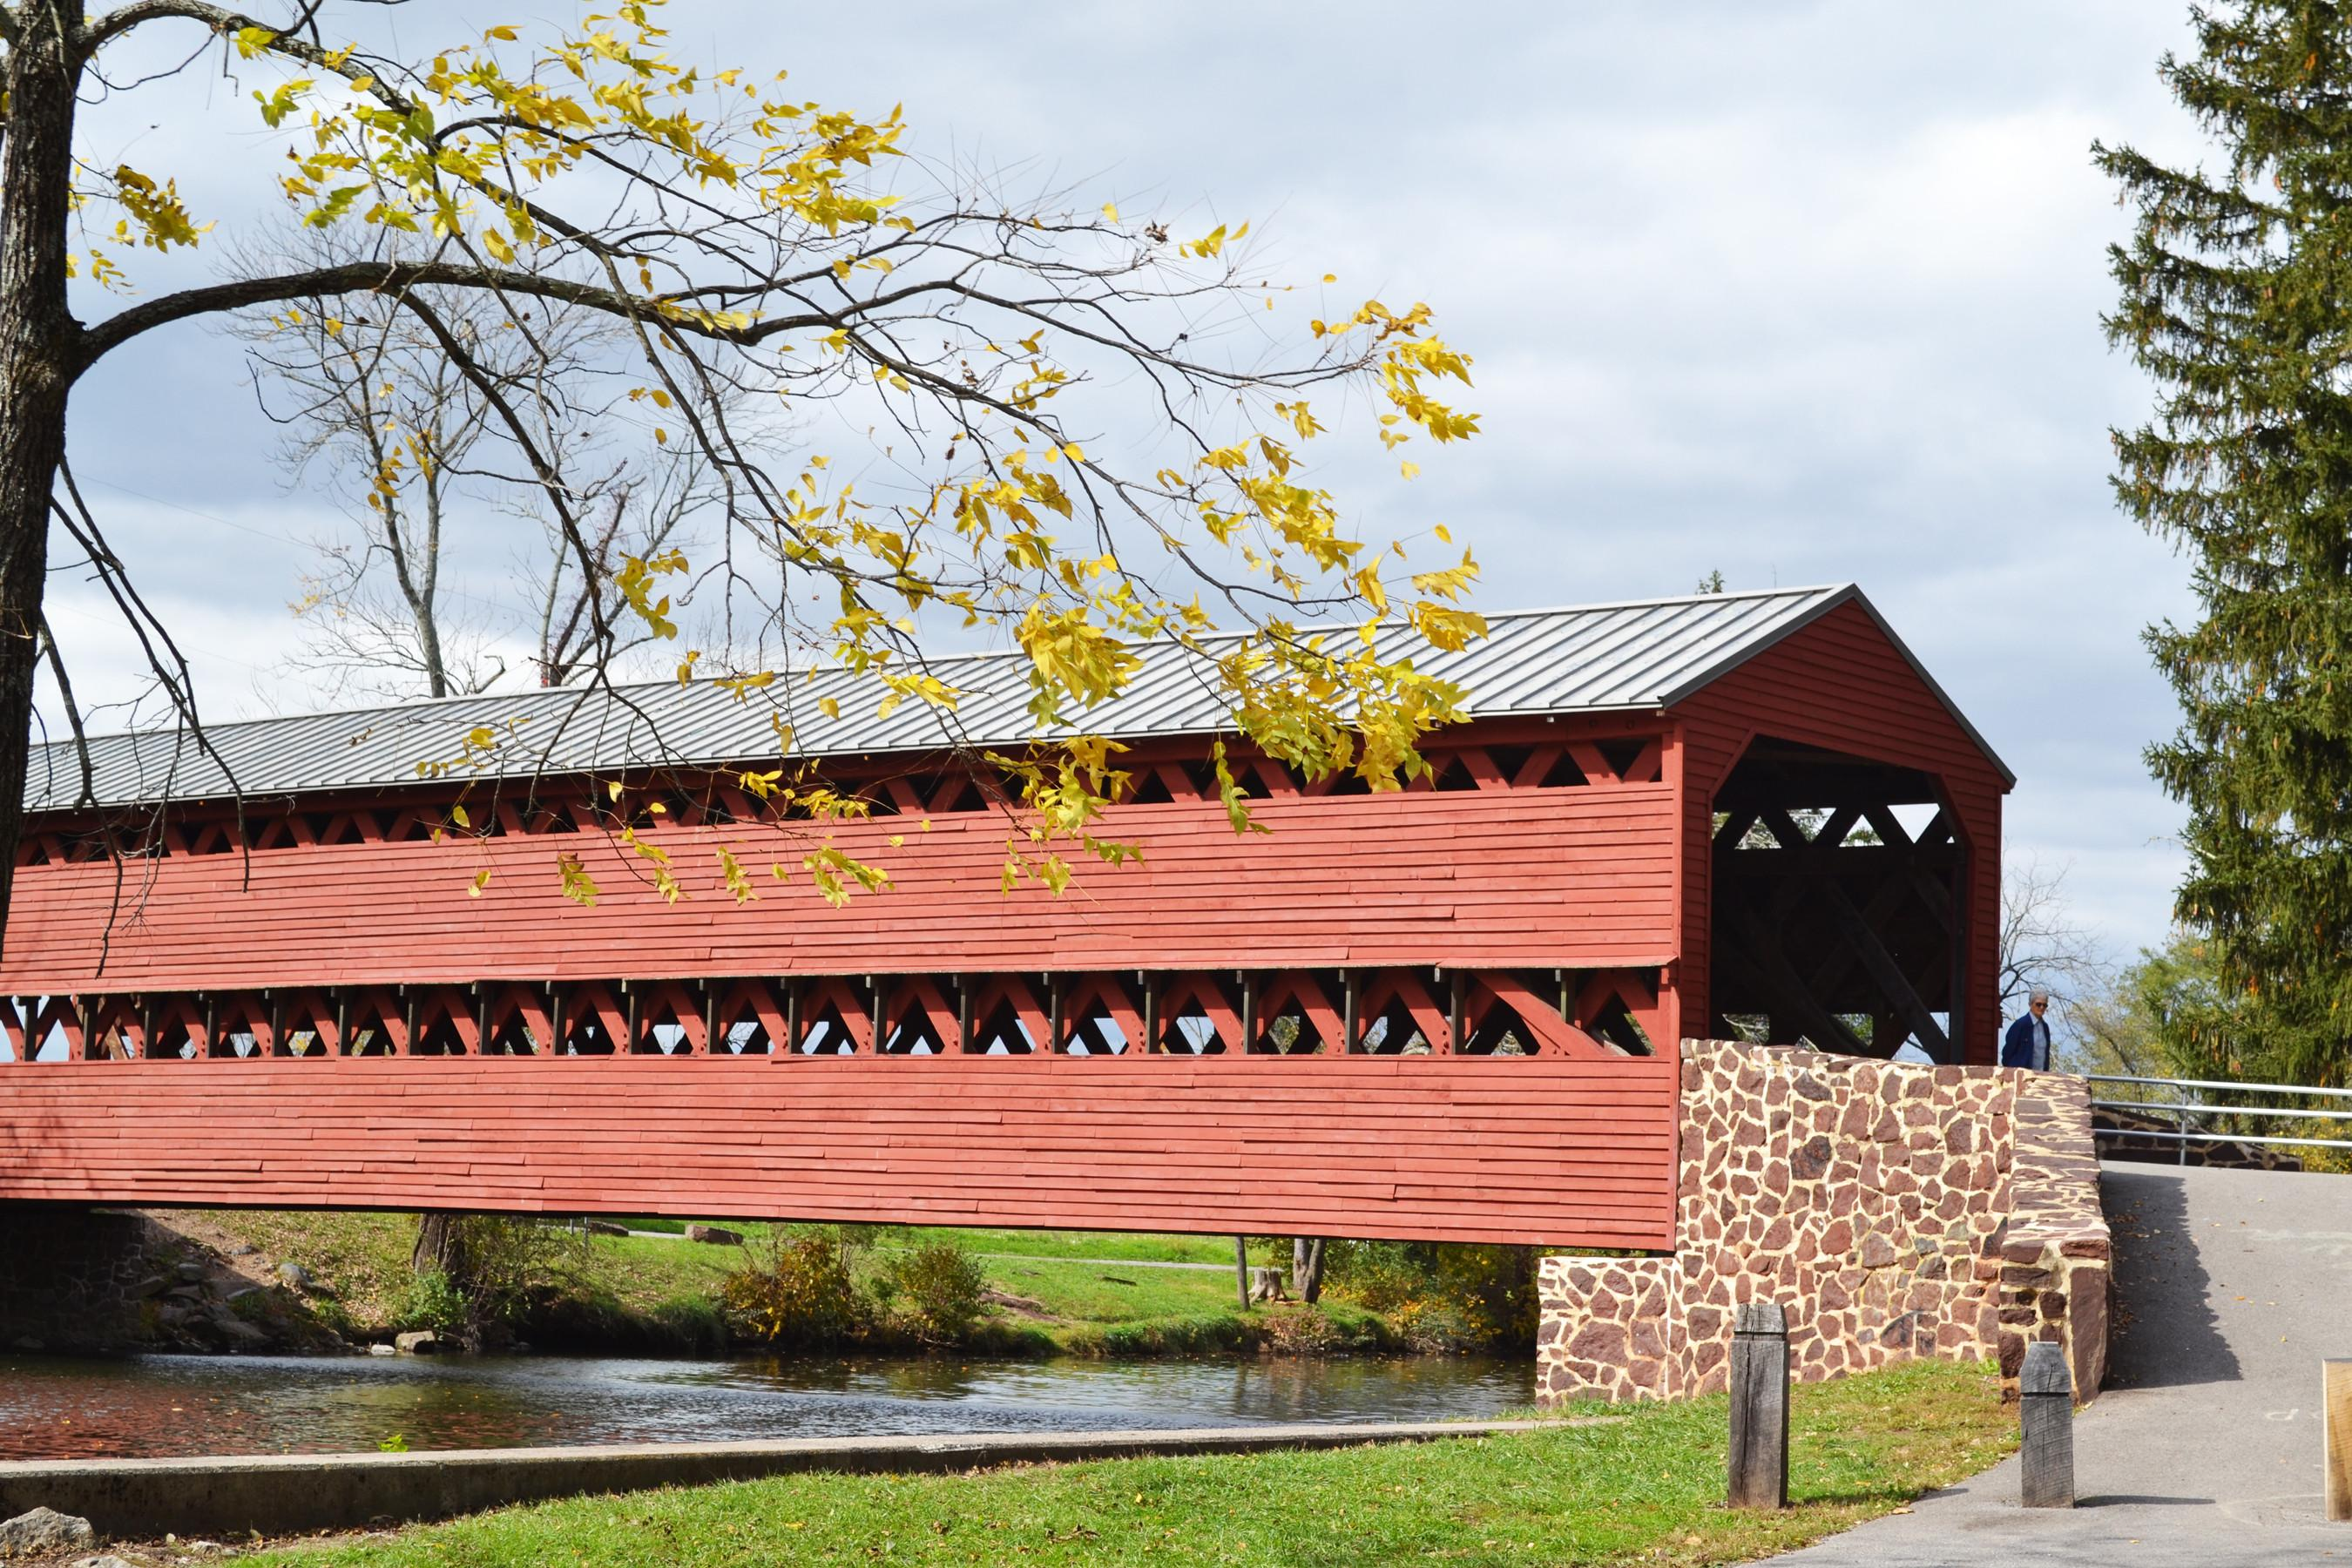 Sach's Covered Bridge, which was built in 1852, was used by Union and Confederate soldiers during the Civil War. (Photo courtesy of Destination Gettysburg)